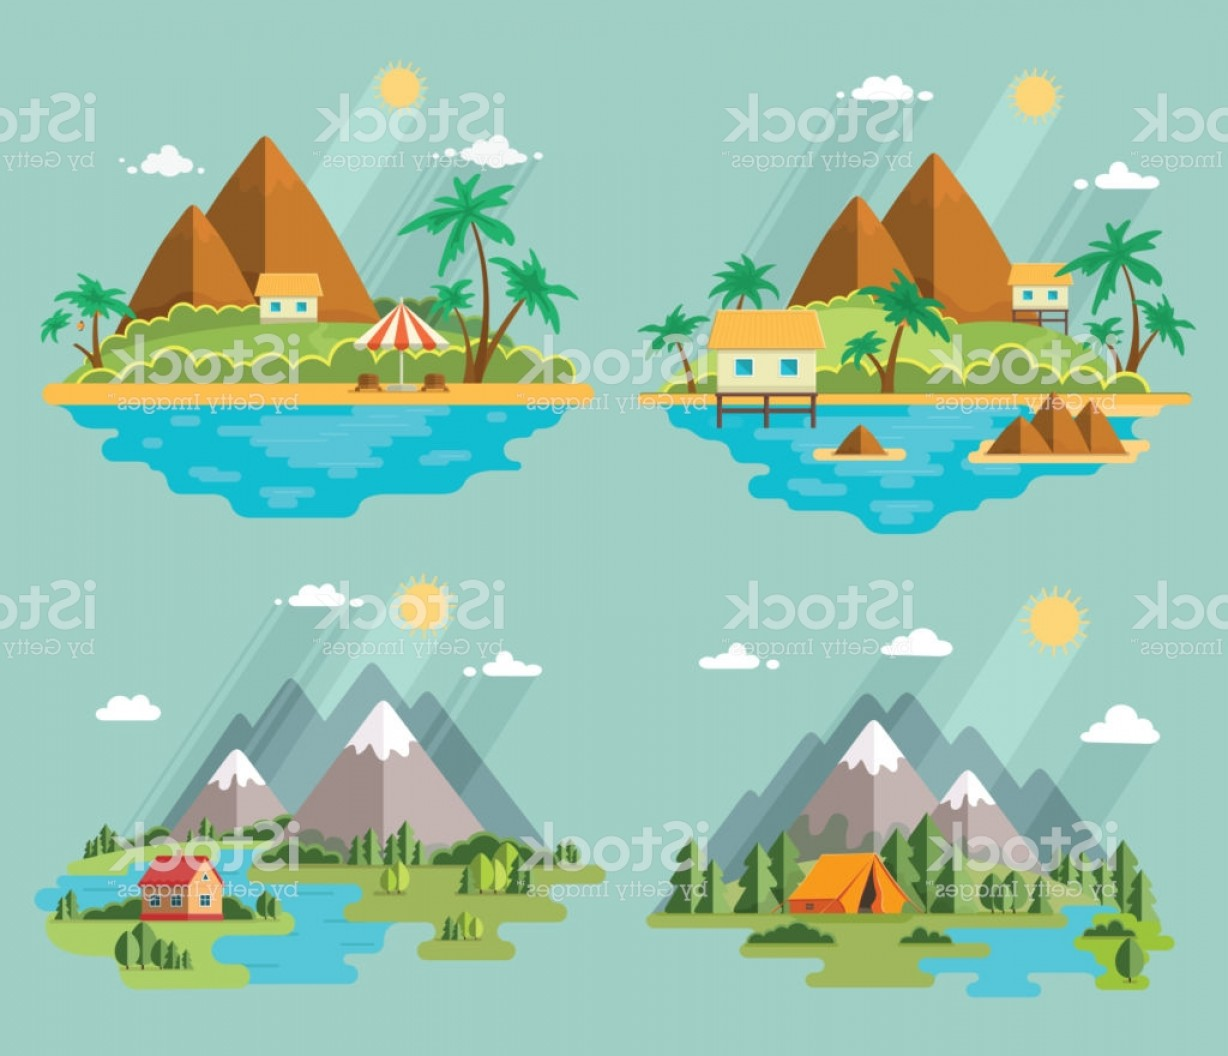 Picnic Vector Scenery: Set Of Beautiful Tropical And Mountain Scenery Of Nature For Relaxation Vector Flat Gm